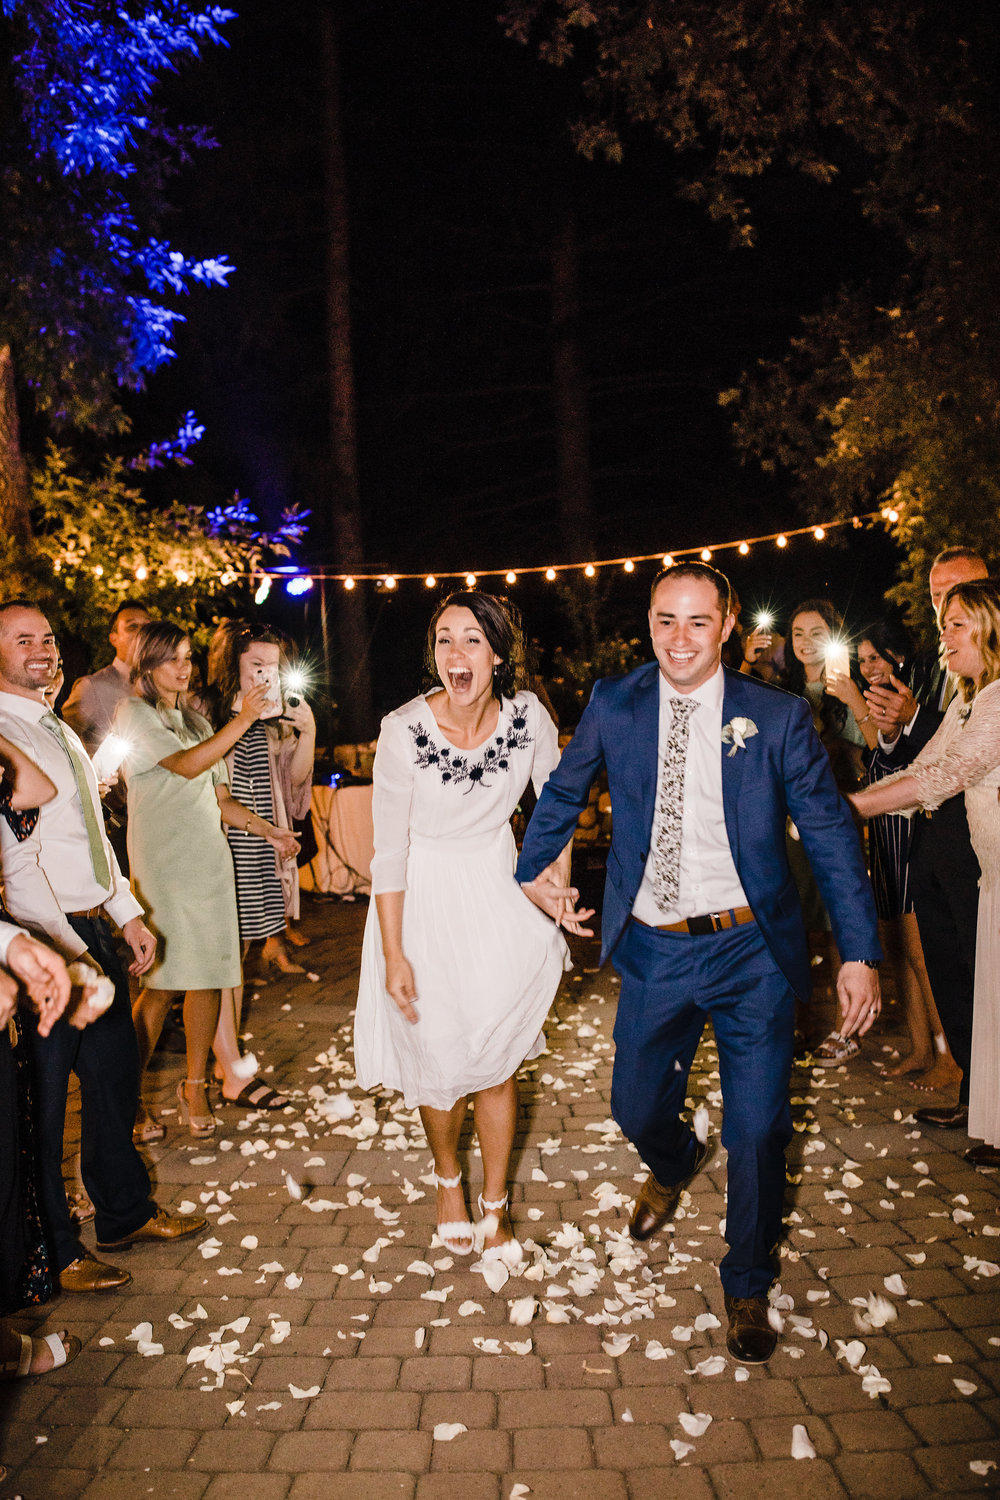 professional brigham city utah photographer wedding reception exit string lights flowers happy holding hands cheering